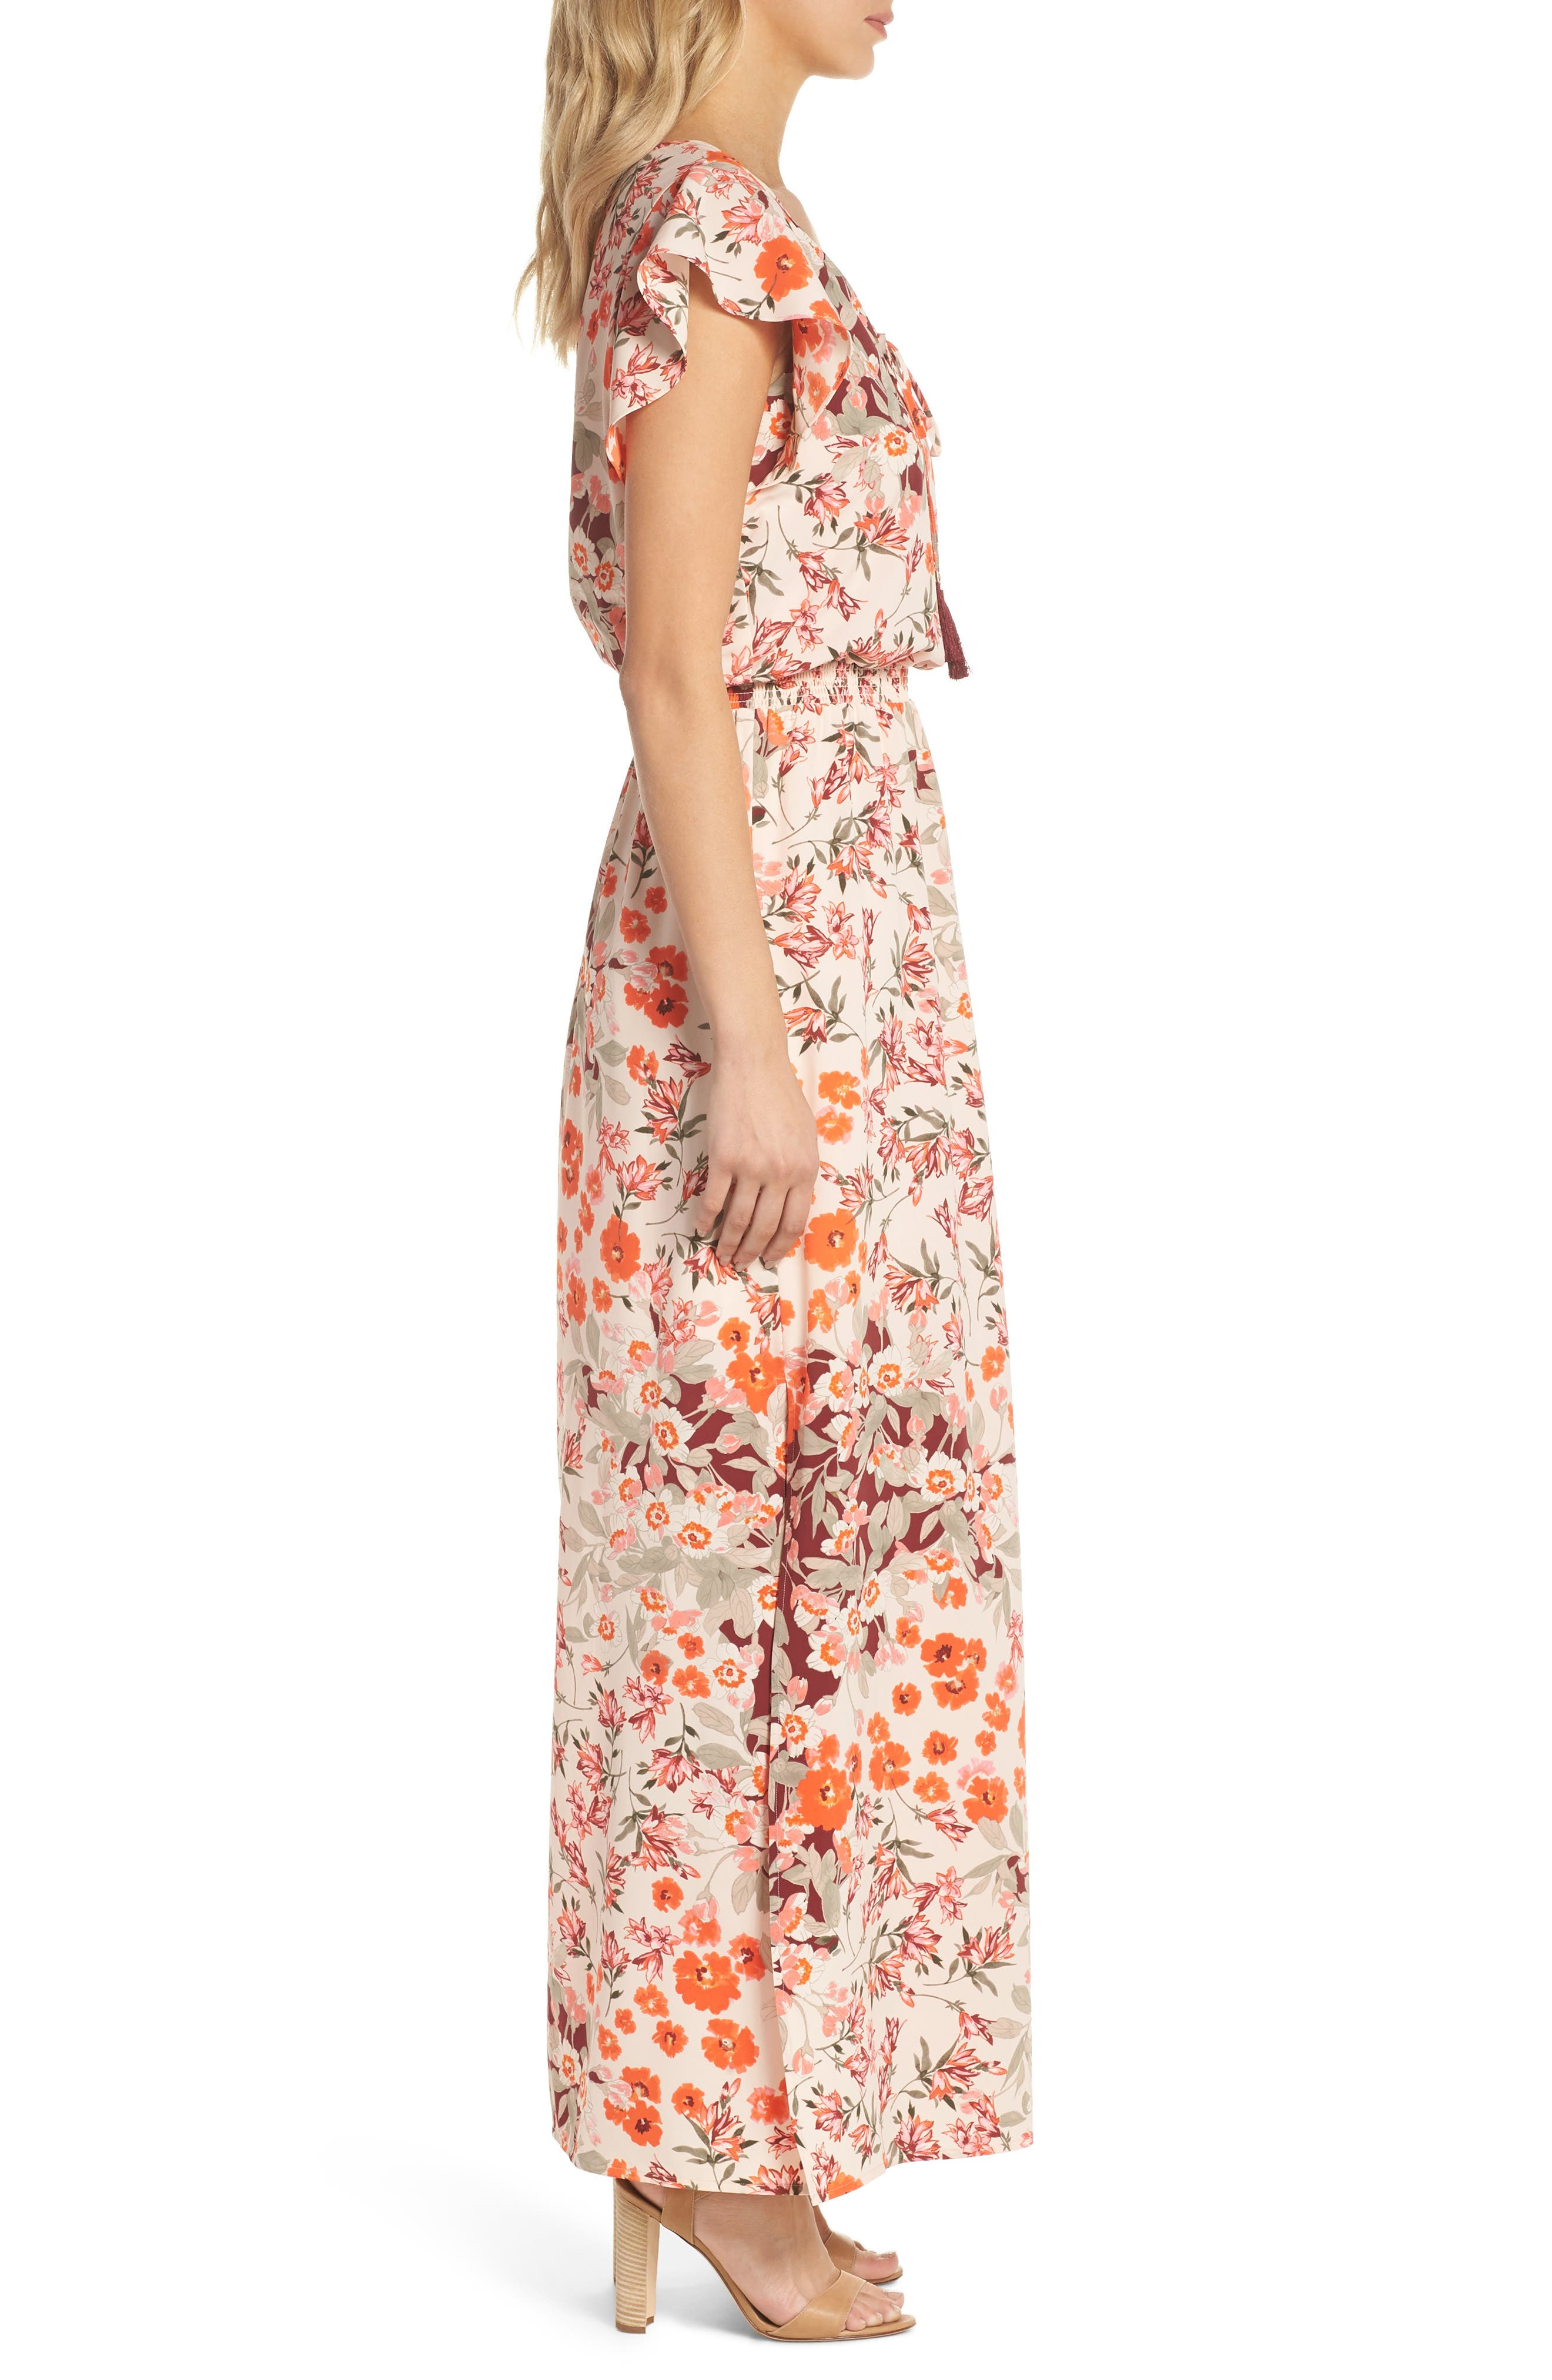 ADRIANNA PAPELL,                             Floral Ruffle Sleeve Maxi Dress,                             Alternate thumbnail 3, color,                             640